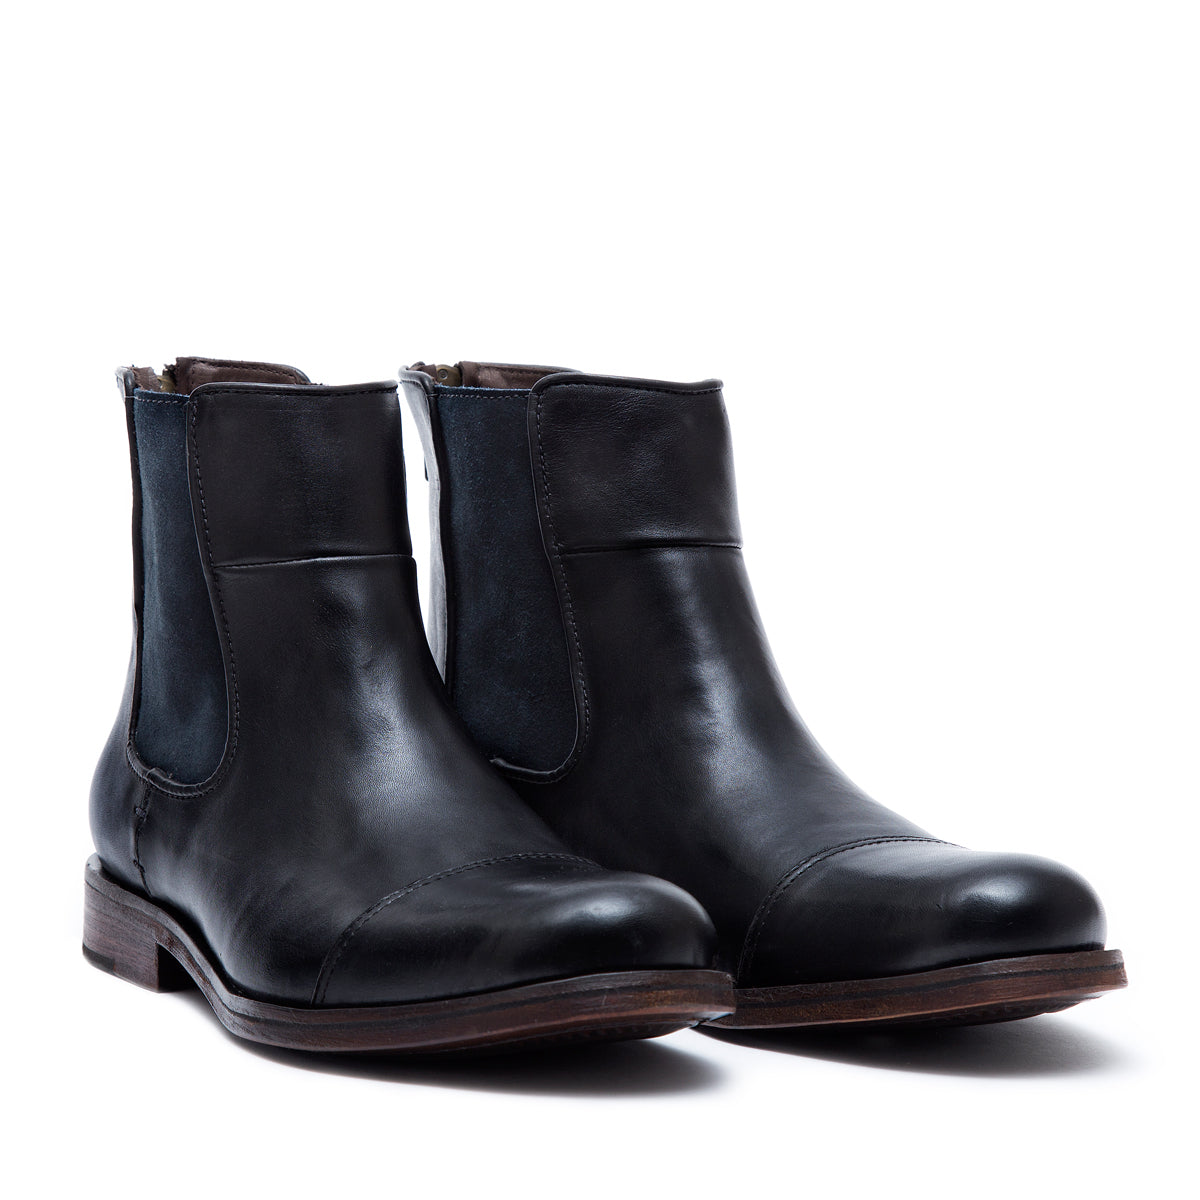 Chelsea Zipper Black - leather boots